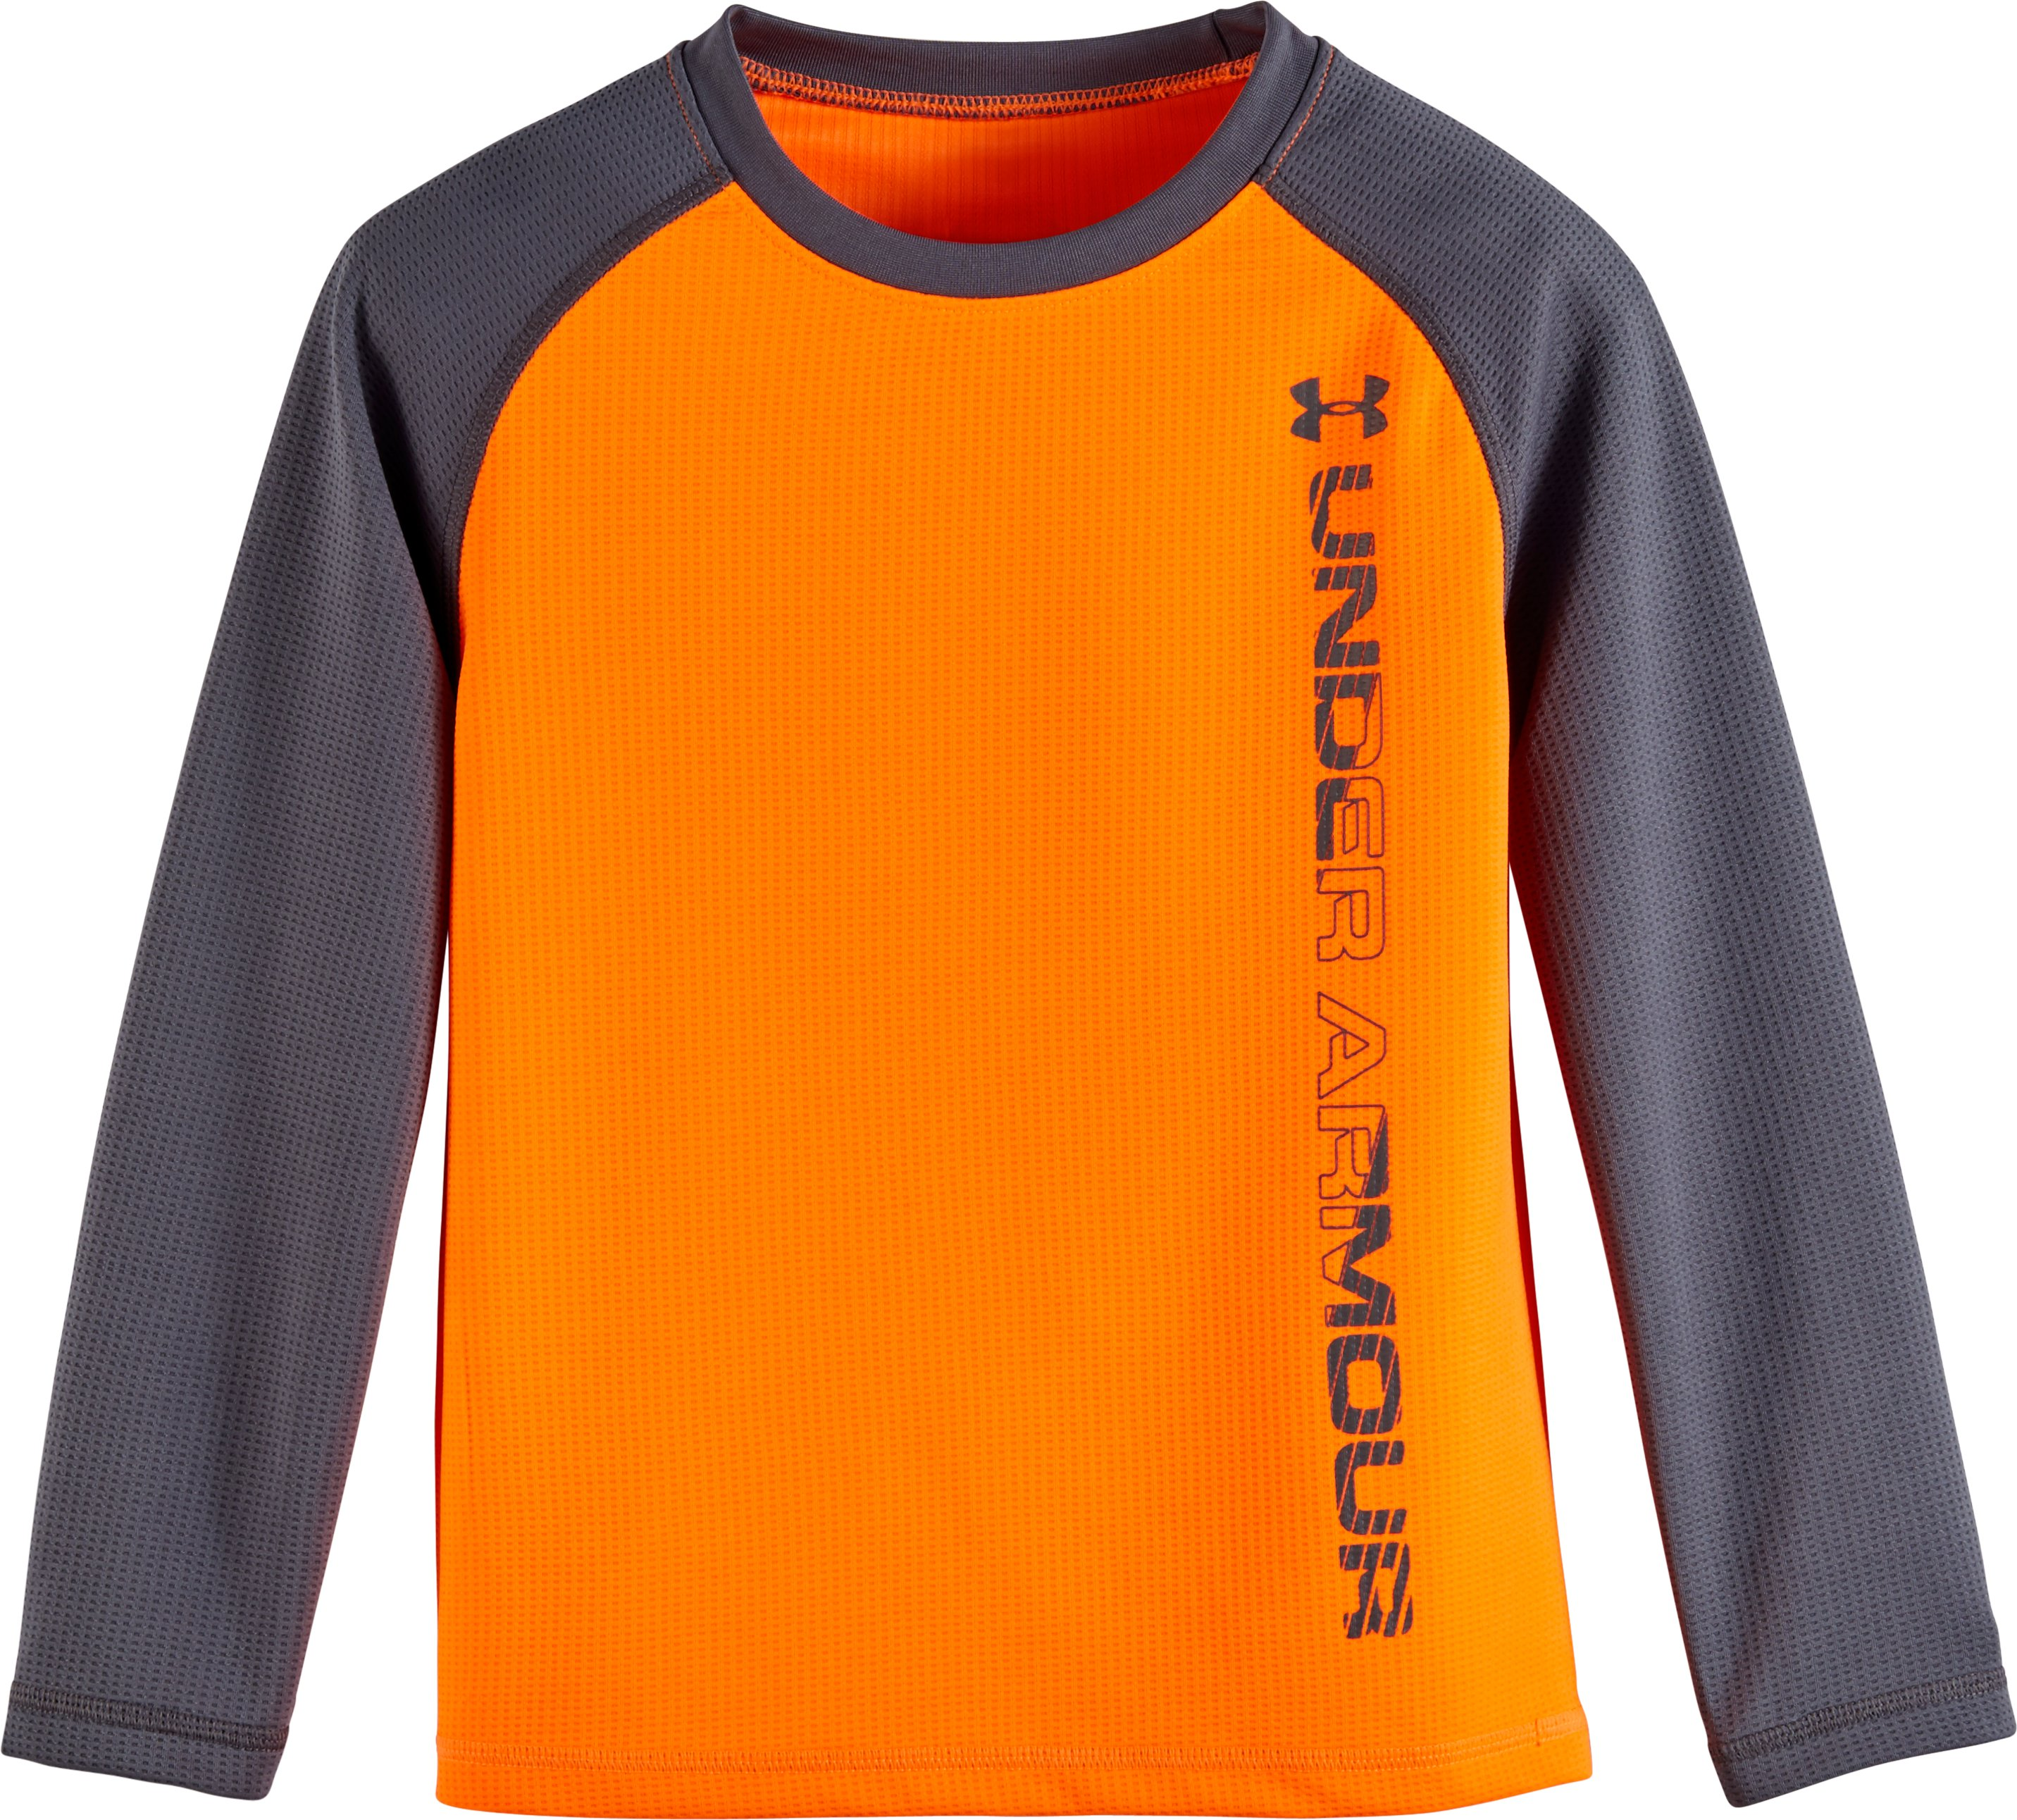 Boys' Pre-School UA Waffle Crew Long Sleeve, Blaze Orange